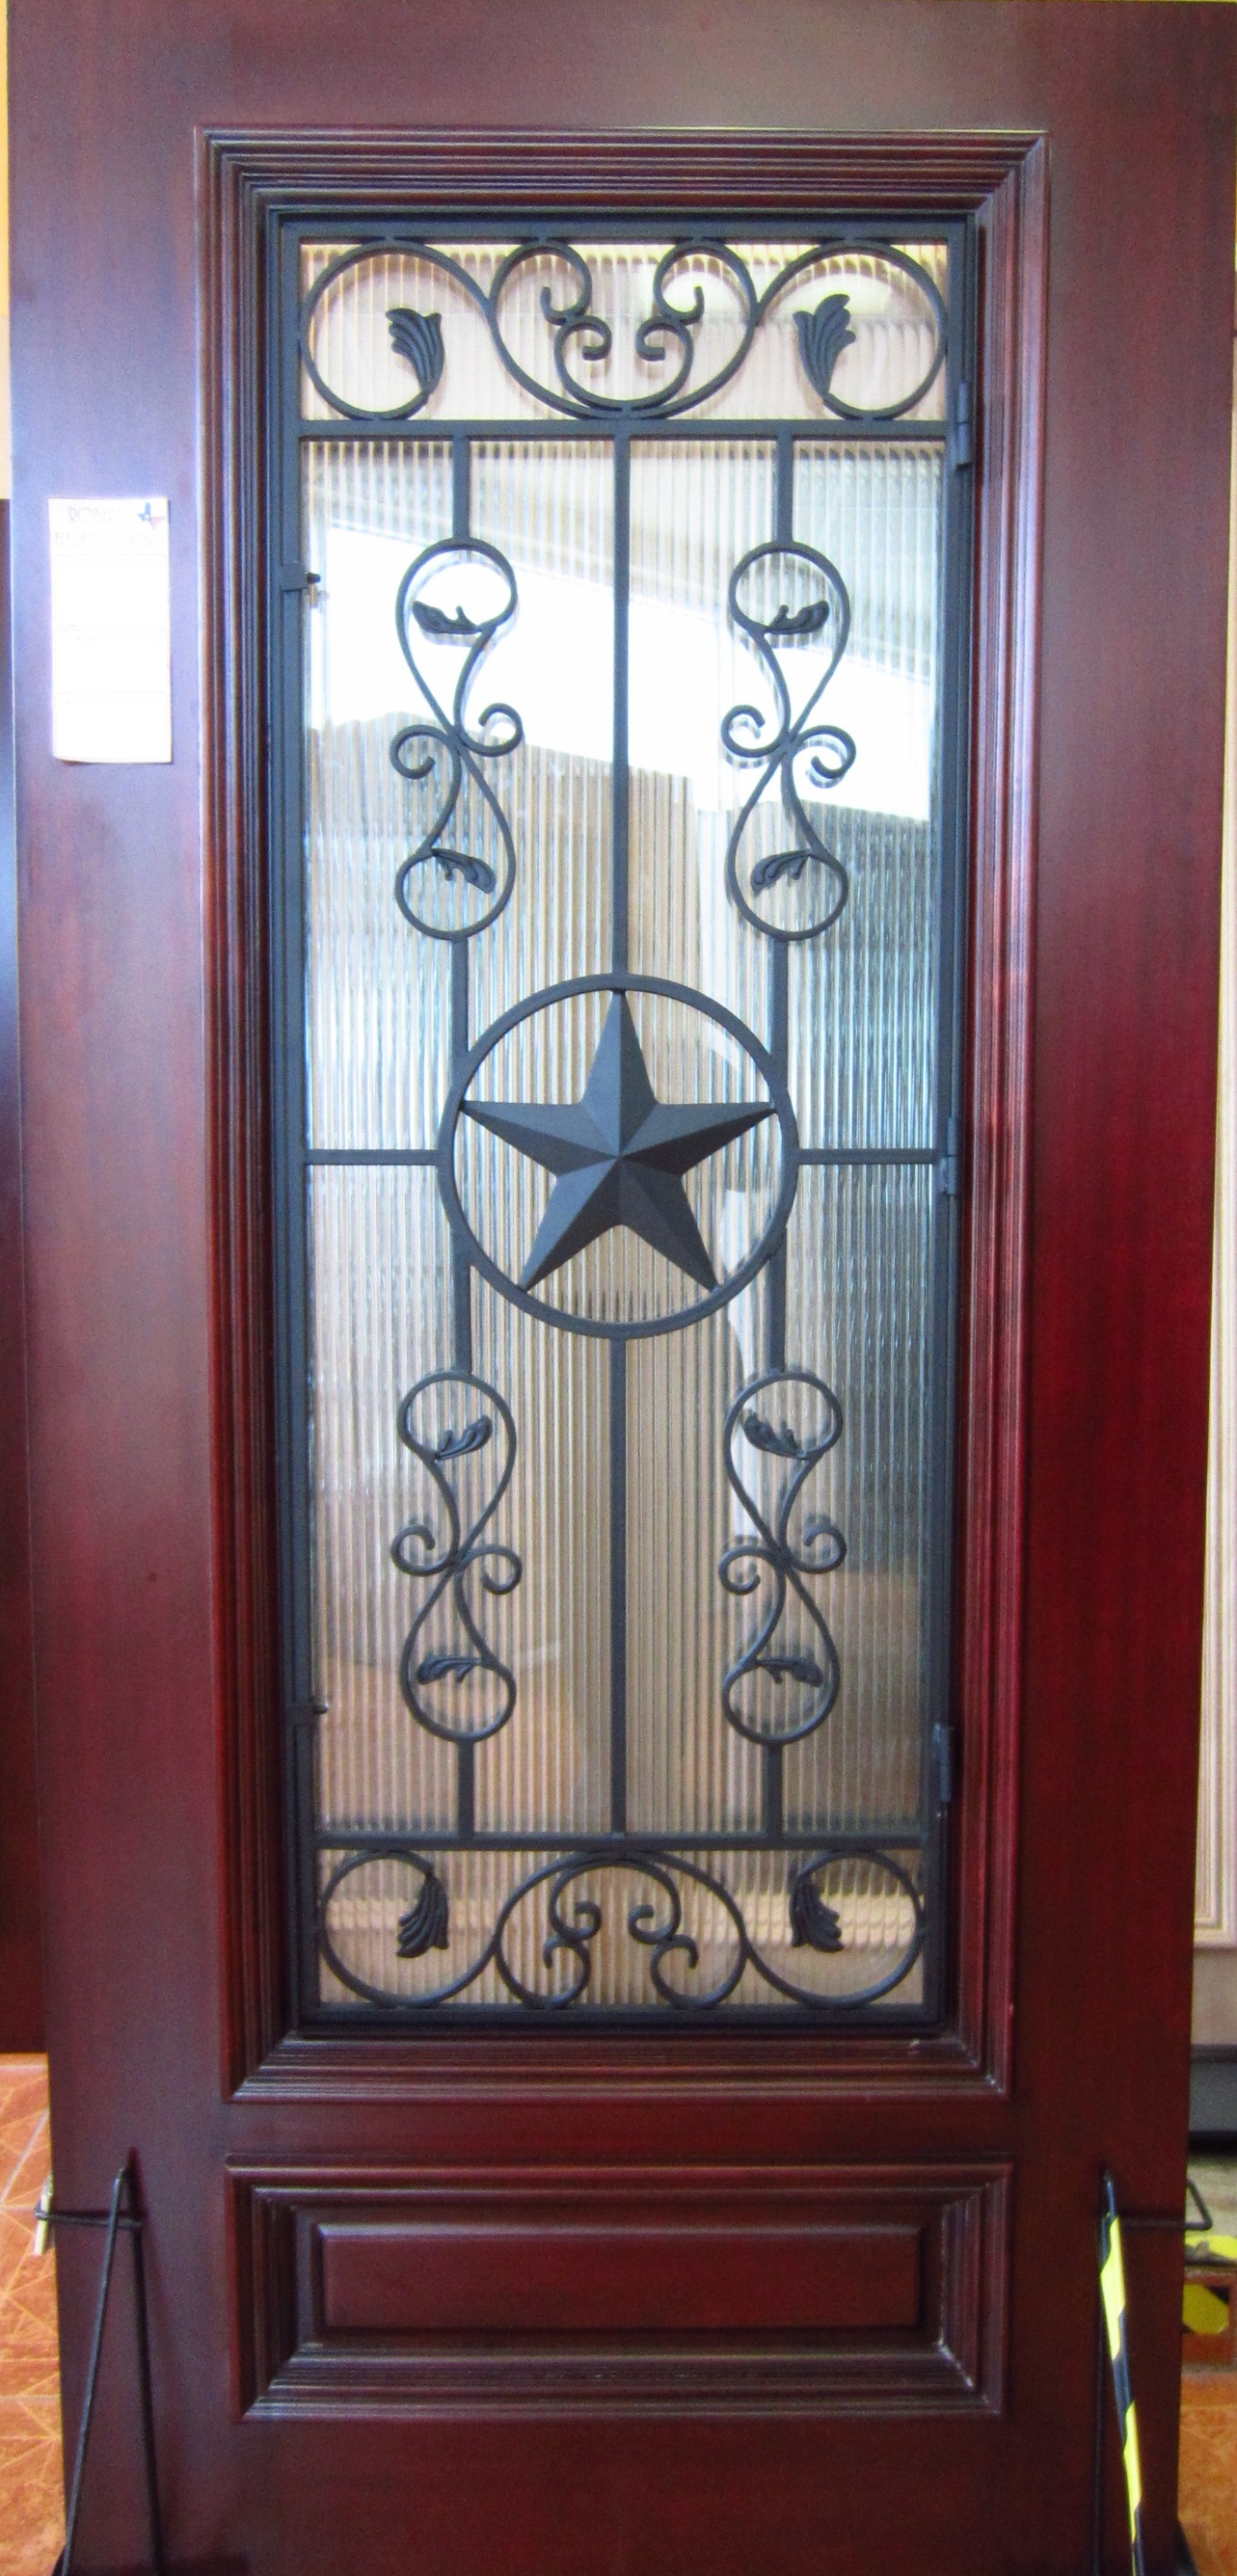 2672 #3F1F23 Doors Houston Doors Front Doors Houston   Doors Wood  image Wooden Doors Houston 45731283